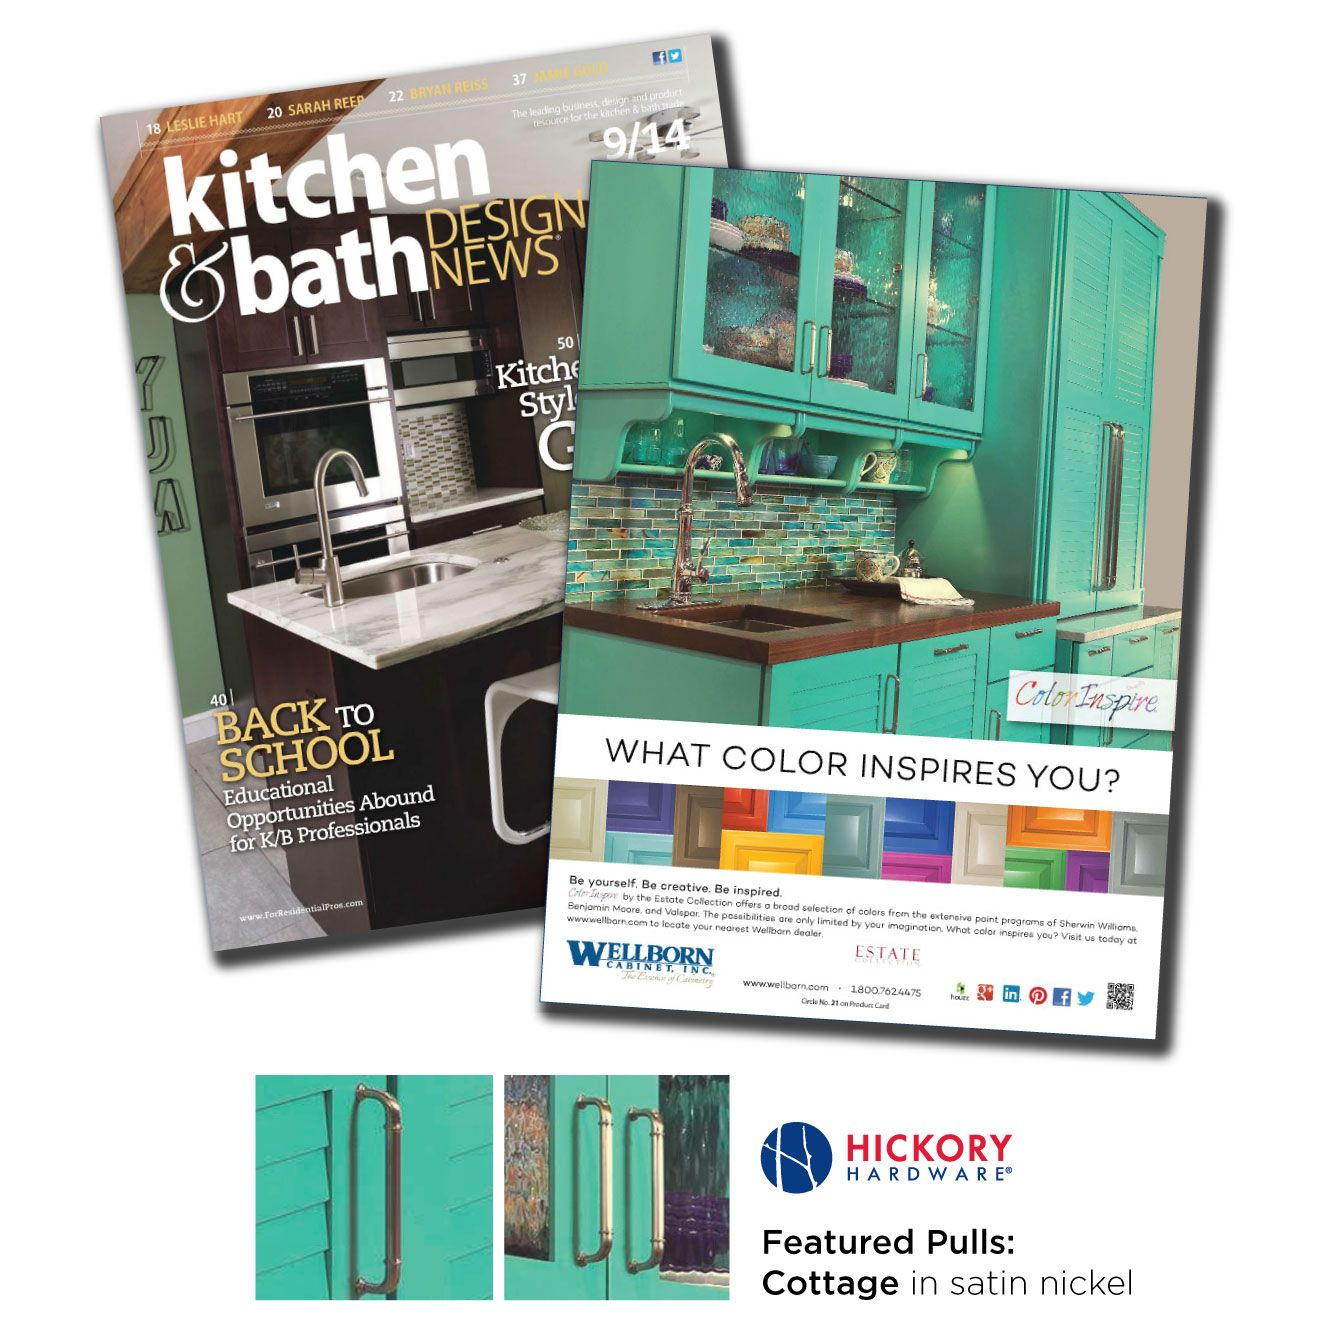 @wellborncabinet ad features the Hickory Hardware Cottage ...